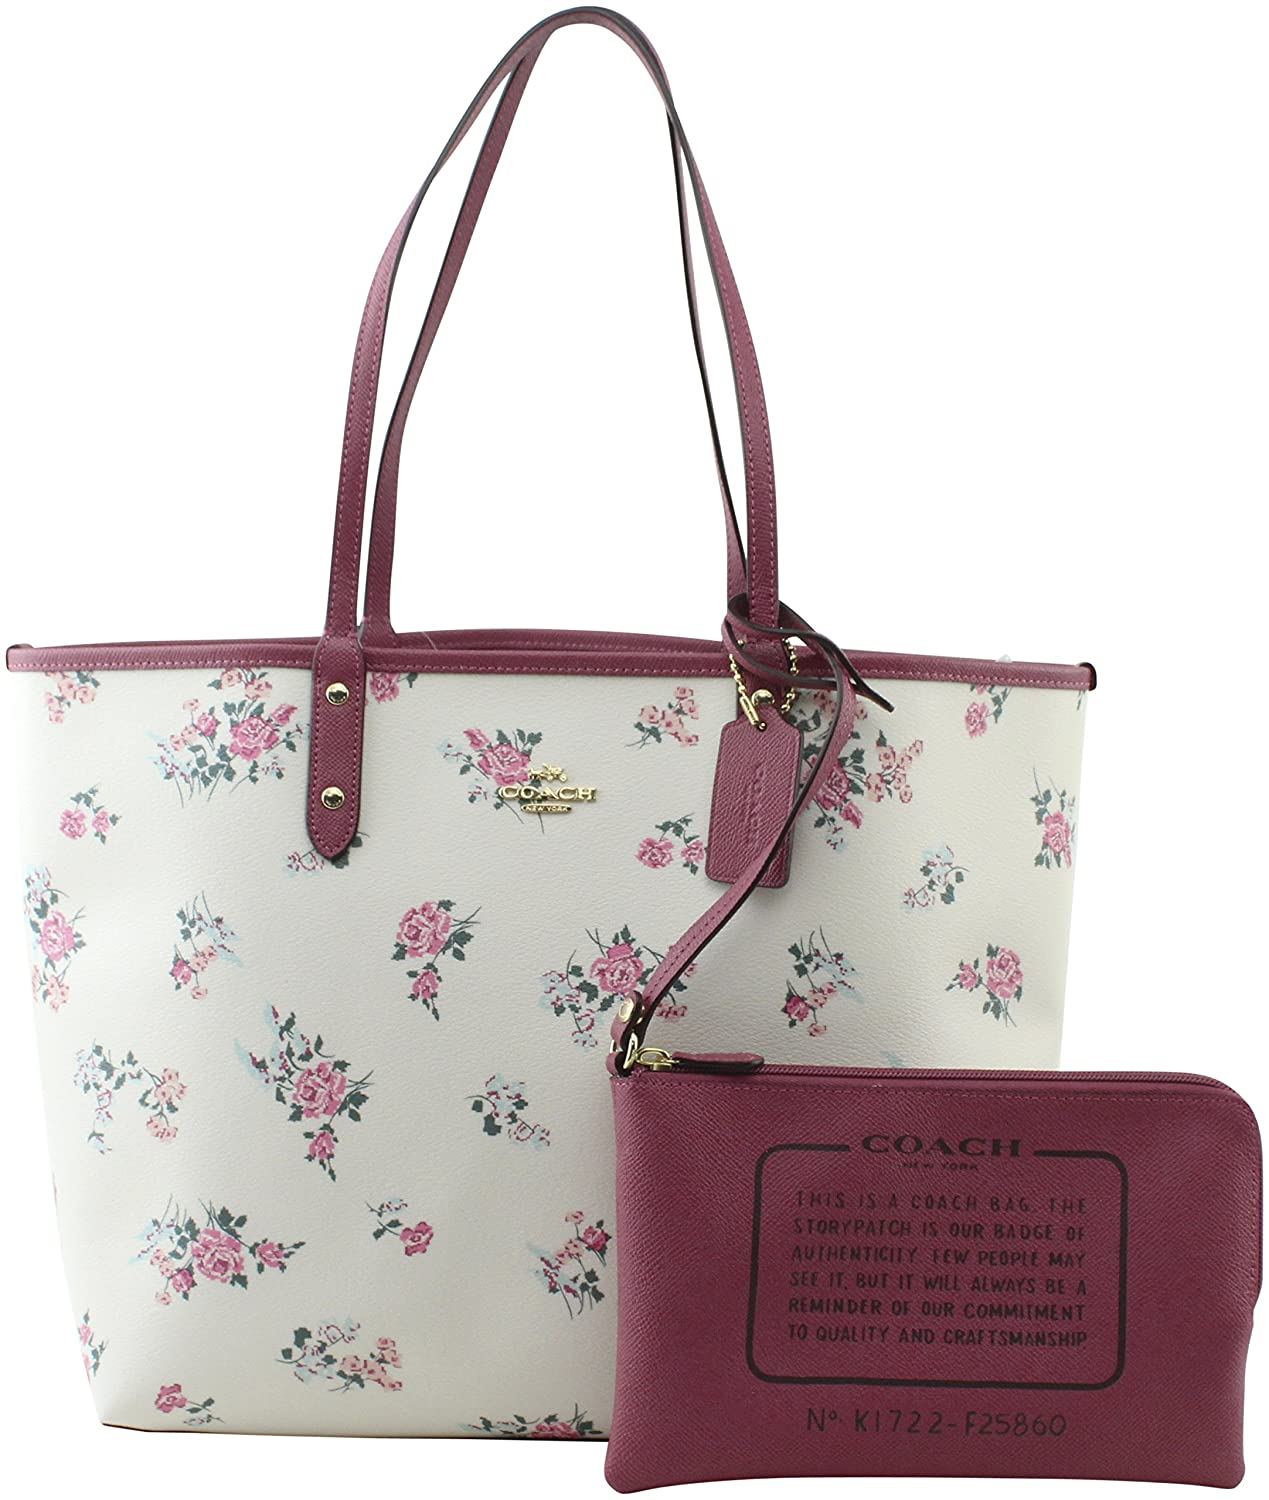 5c946ce1f5 Amazon.com  COACH REVERSIBLE CITY TOTE WITH CROSS STITCH FLORAL ...